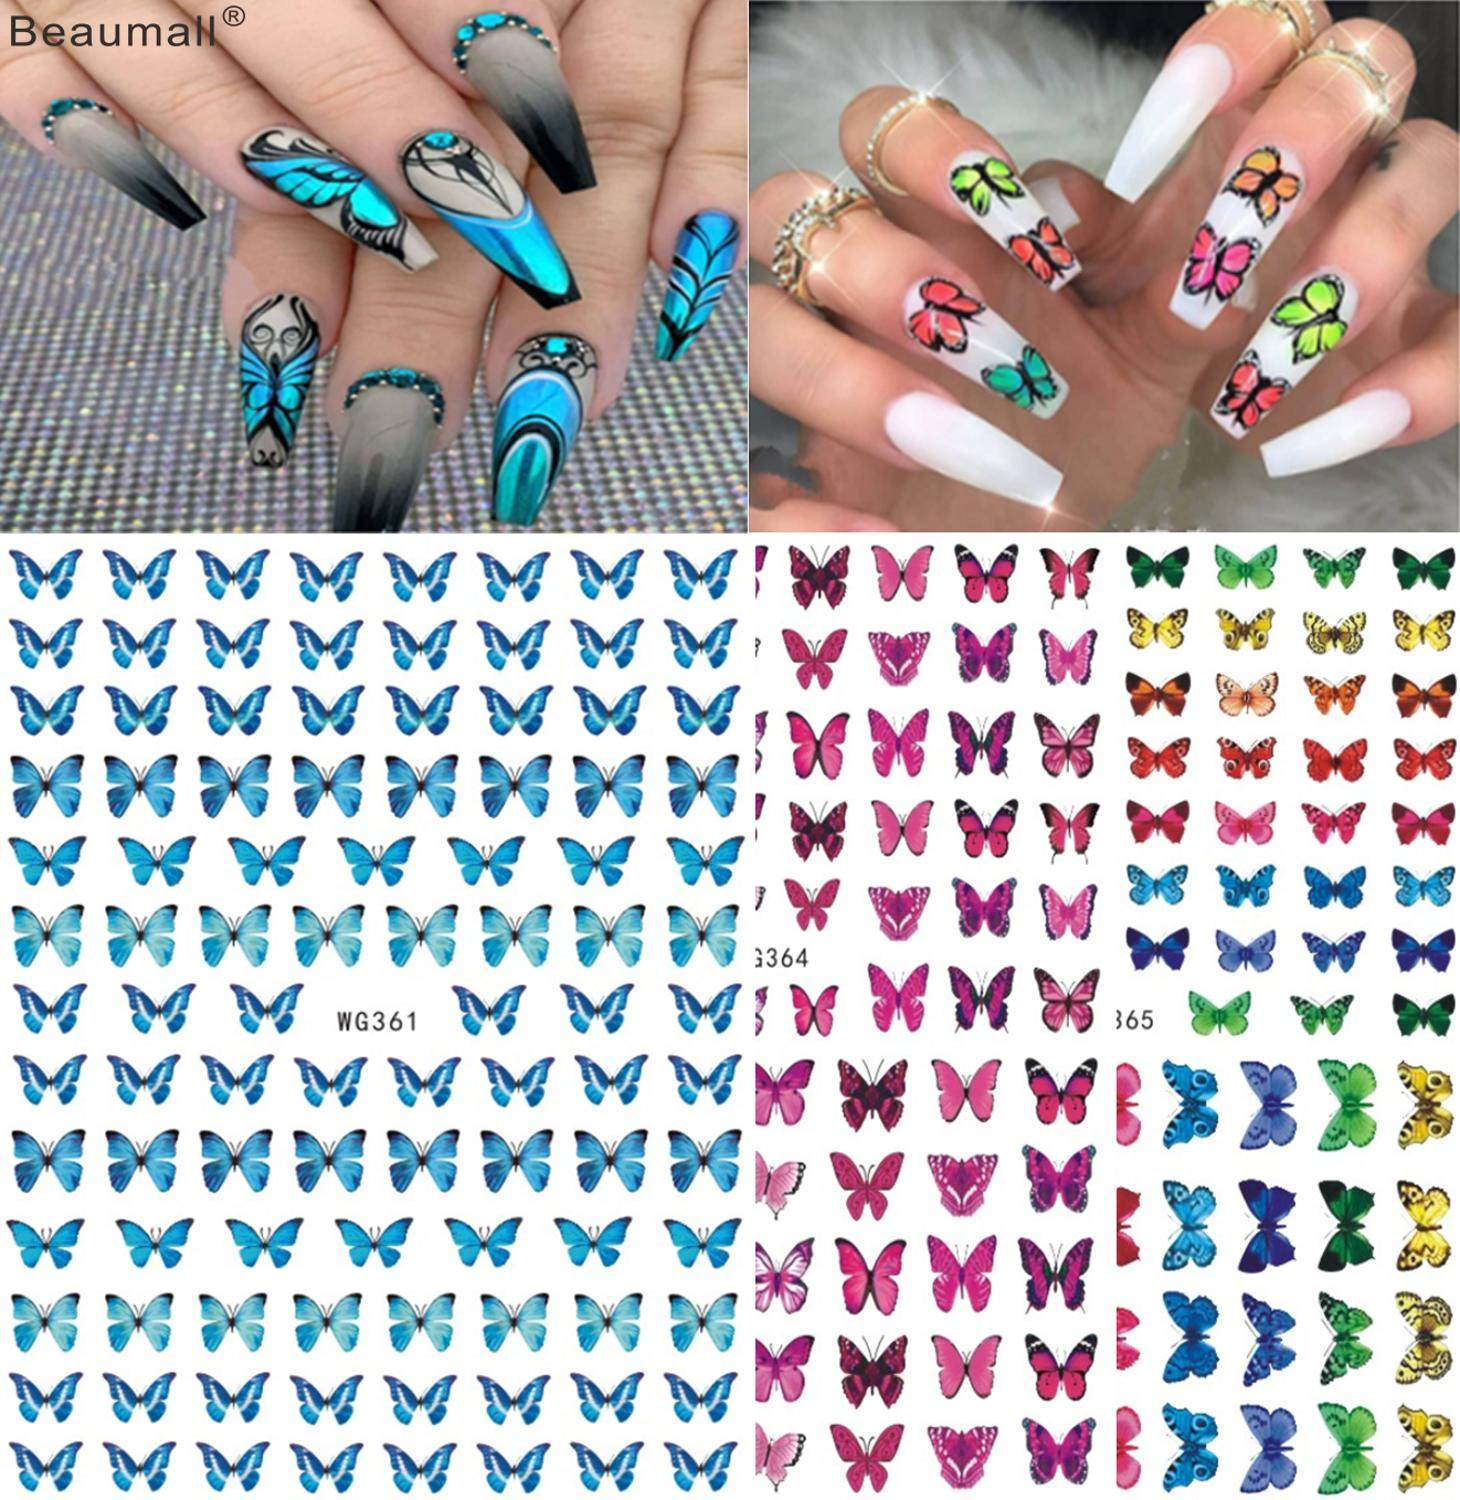 Elegant Butterfly Nails Art Manicure Back Glue Decal Decorations Nail Sticker For Nails Tips Beauty